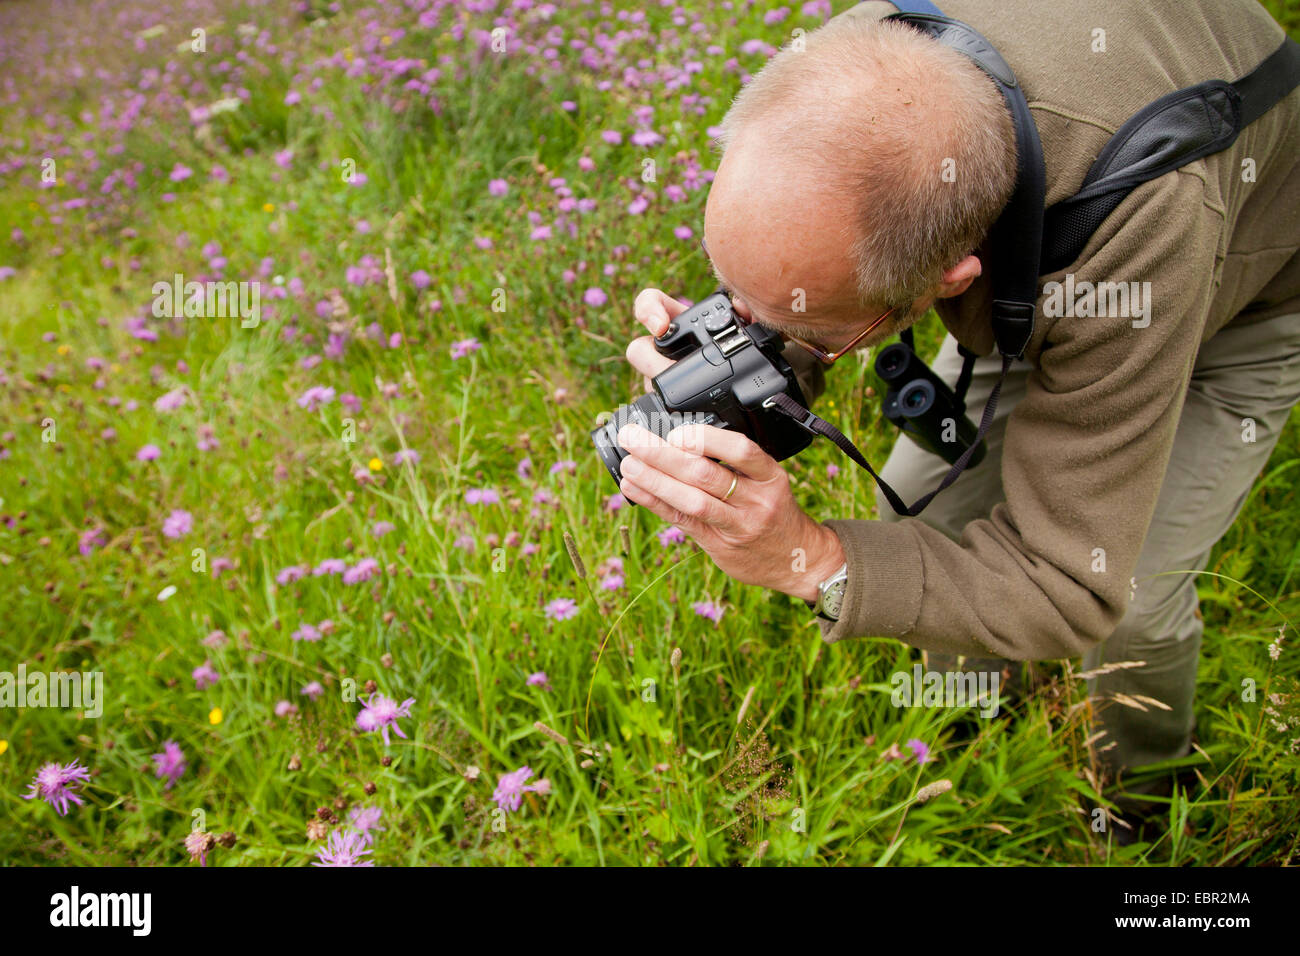 man taking photos of knapweeds in a meadow, Germany, Rhineland-Palatinate - Stock Image